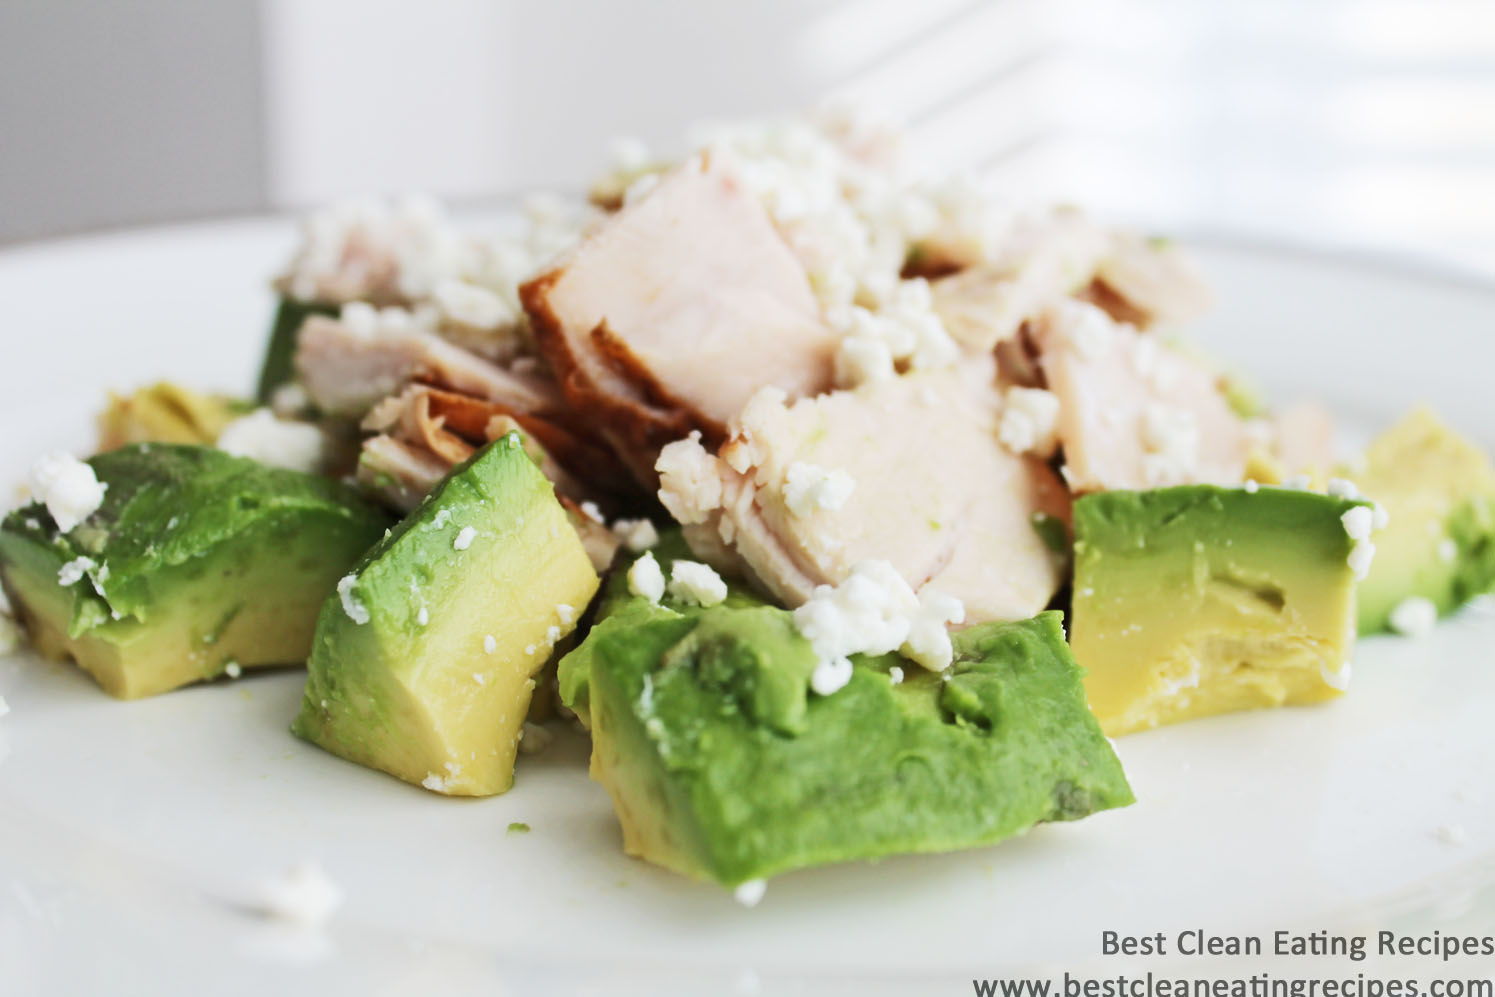 Clean Eating Recipe – Turkey Avocado Feta Salad